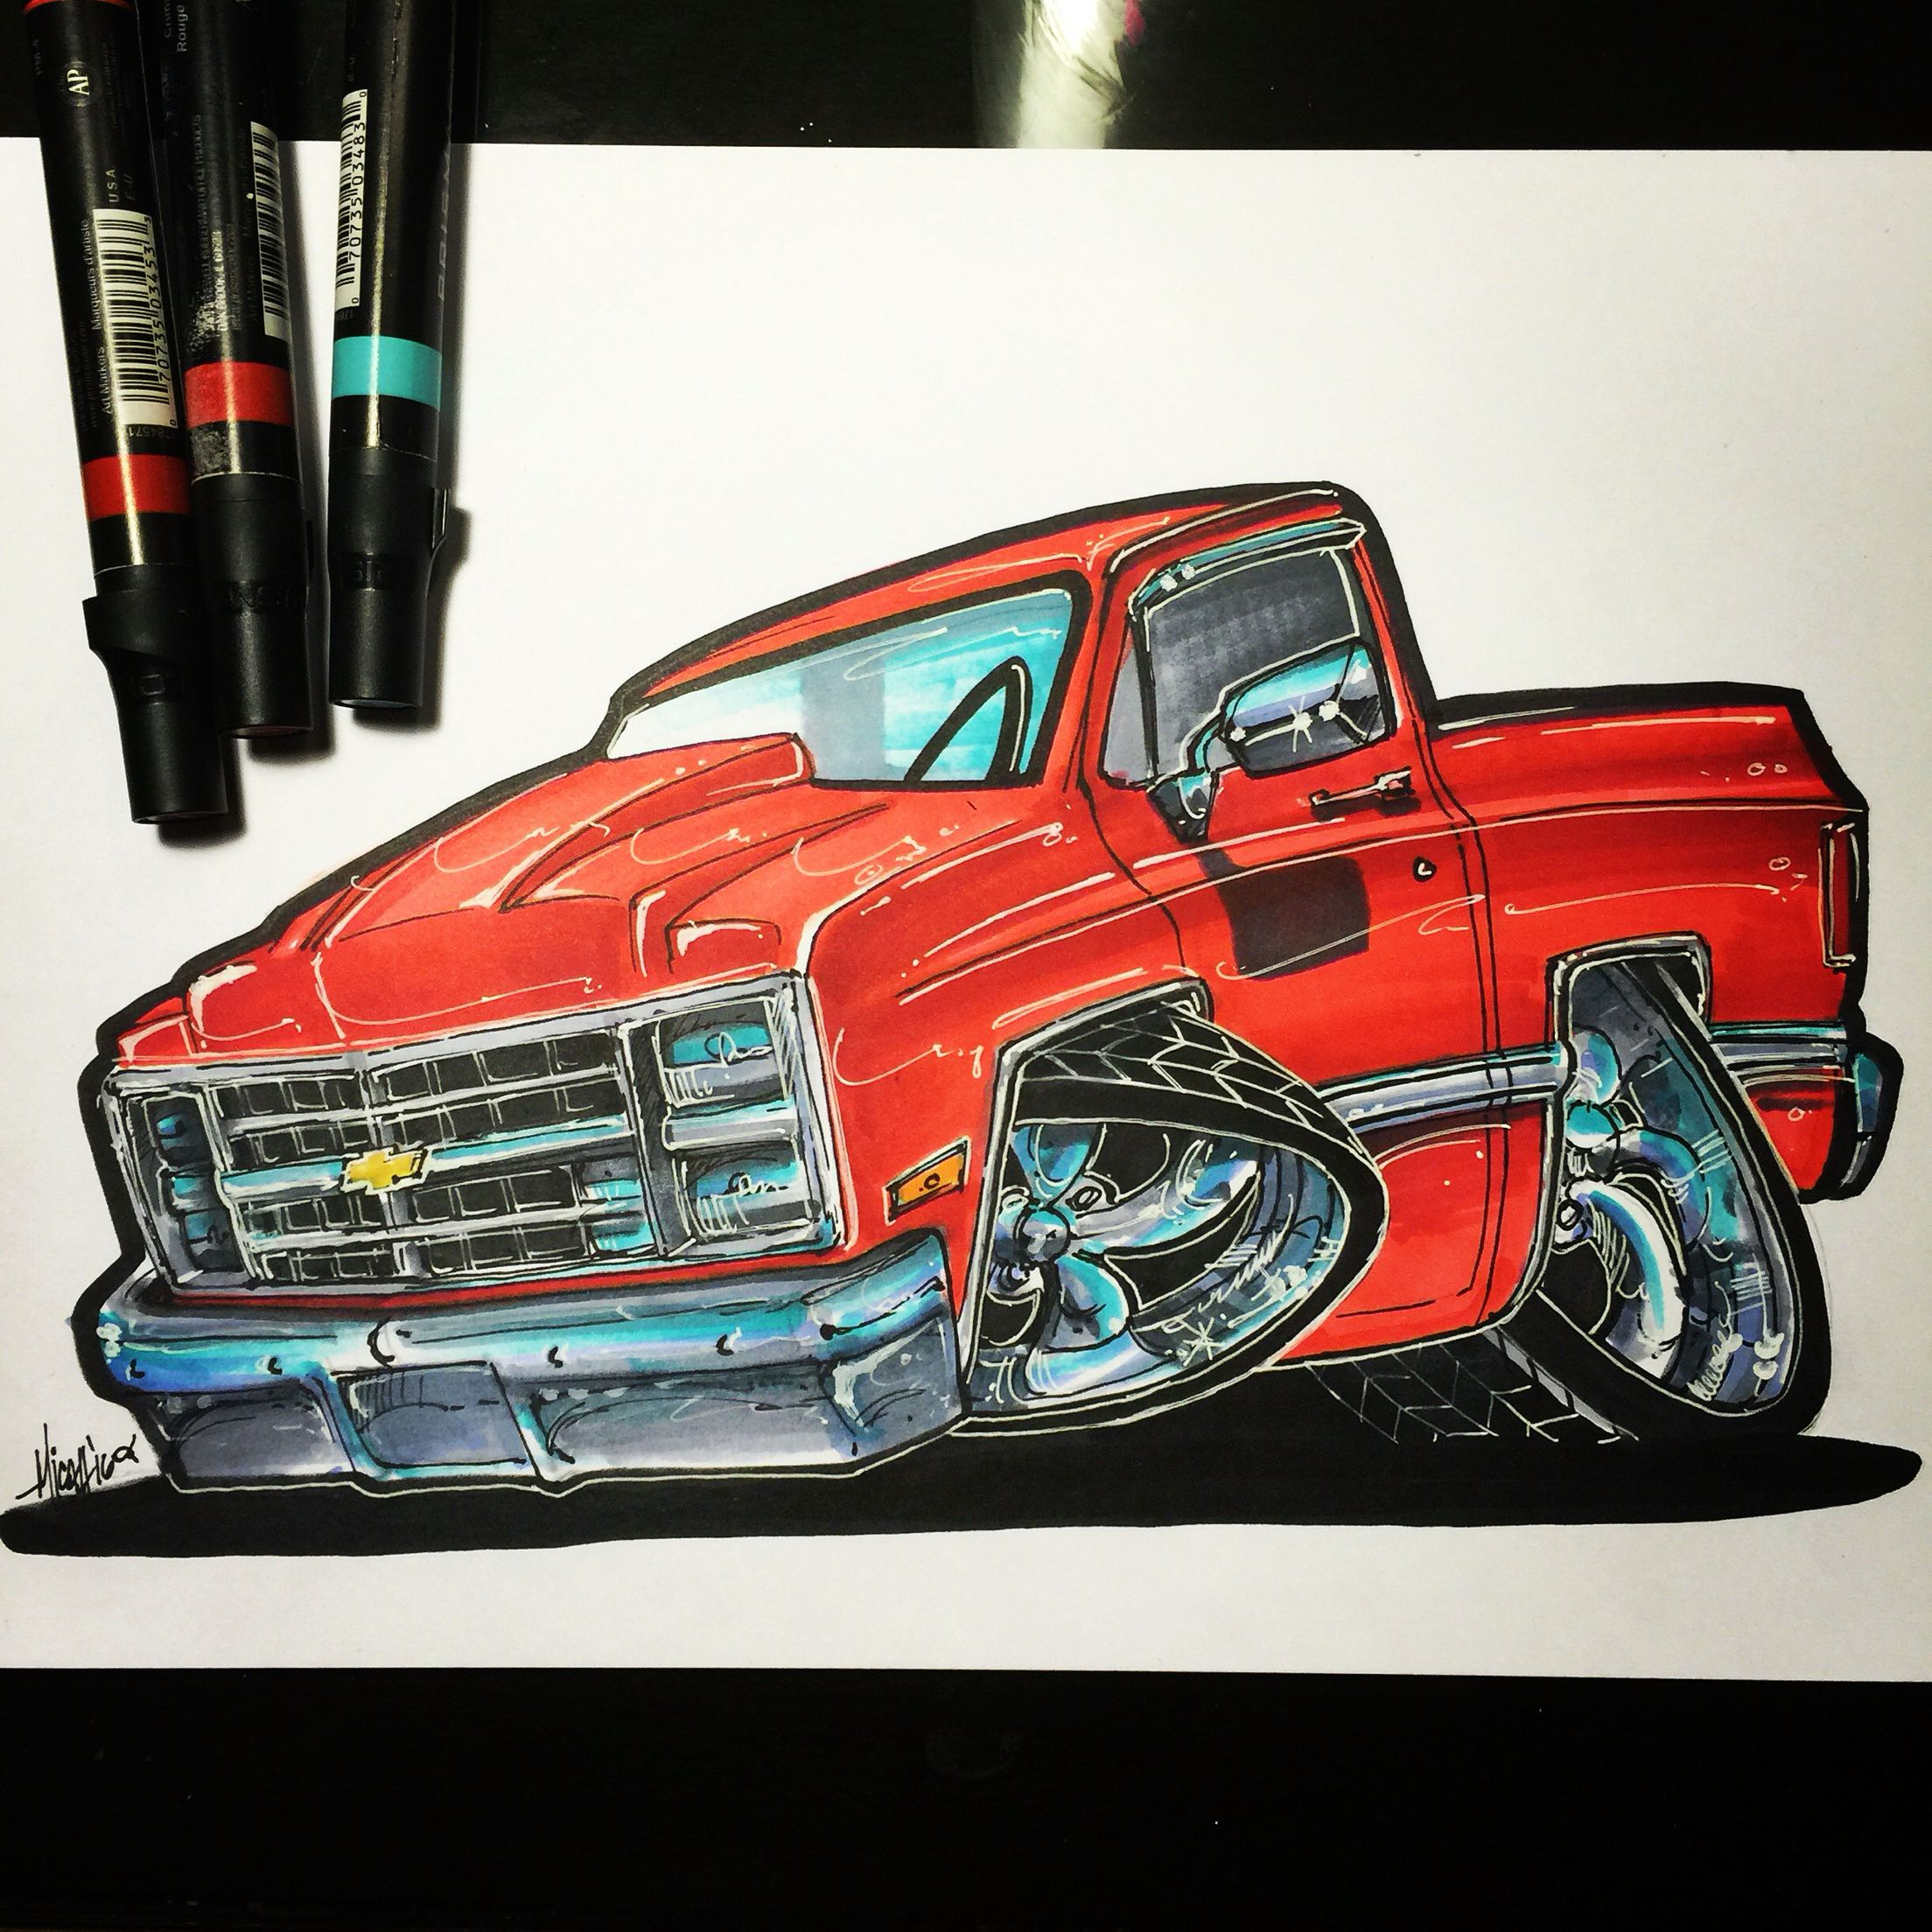 1955 chevrolet pro street truck youtube - Micahdoodles Com Ig _micahdoodles_ Youtube Micahdoodles Watch My Timelapse Drawings 86